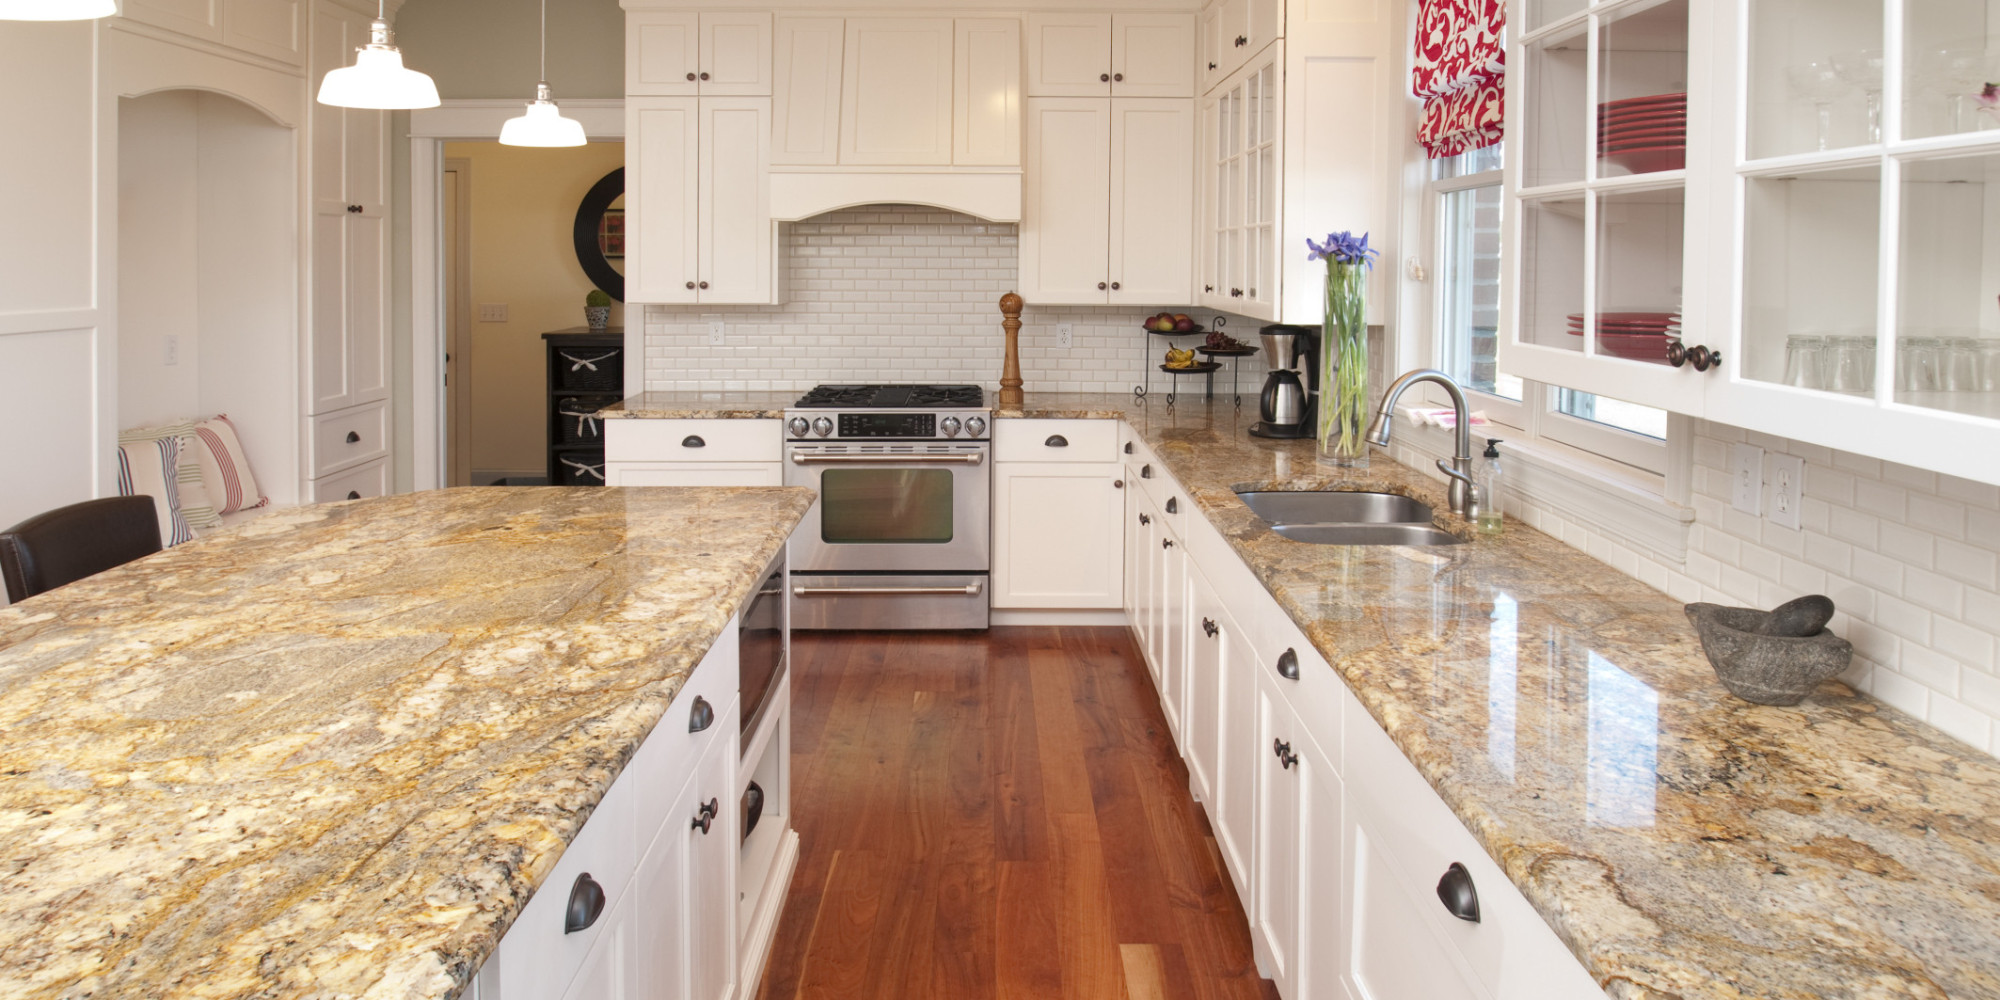 usa coutnertops stone countertop granite in countertops material nashville custom tn homepage